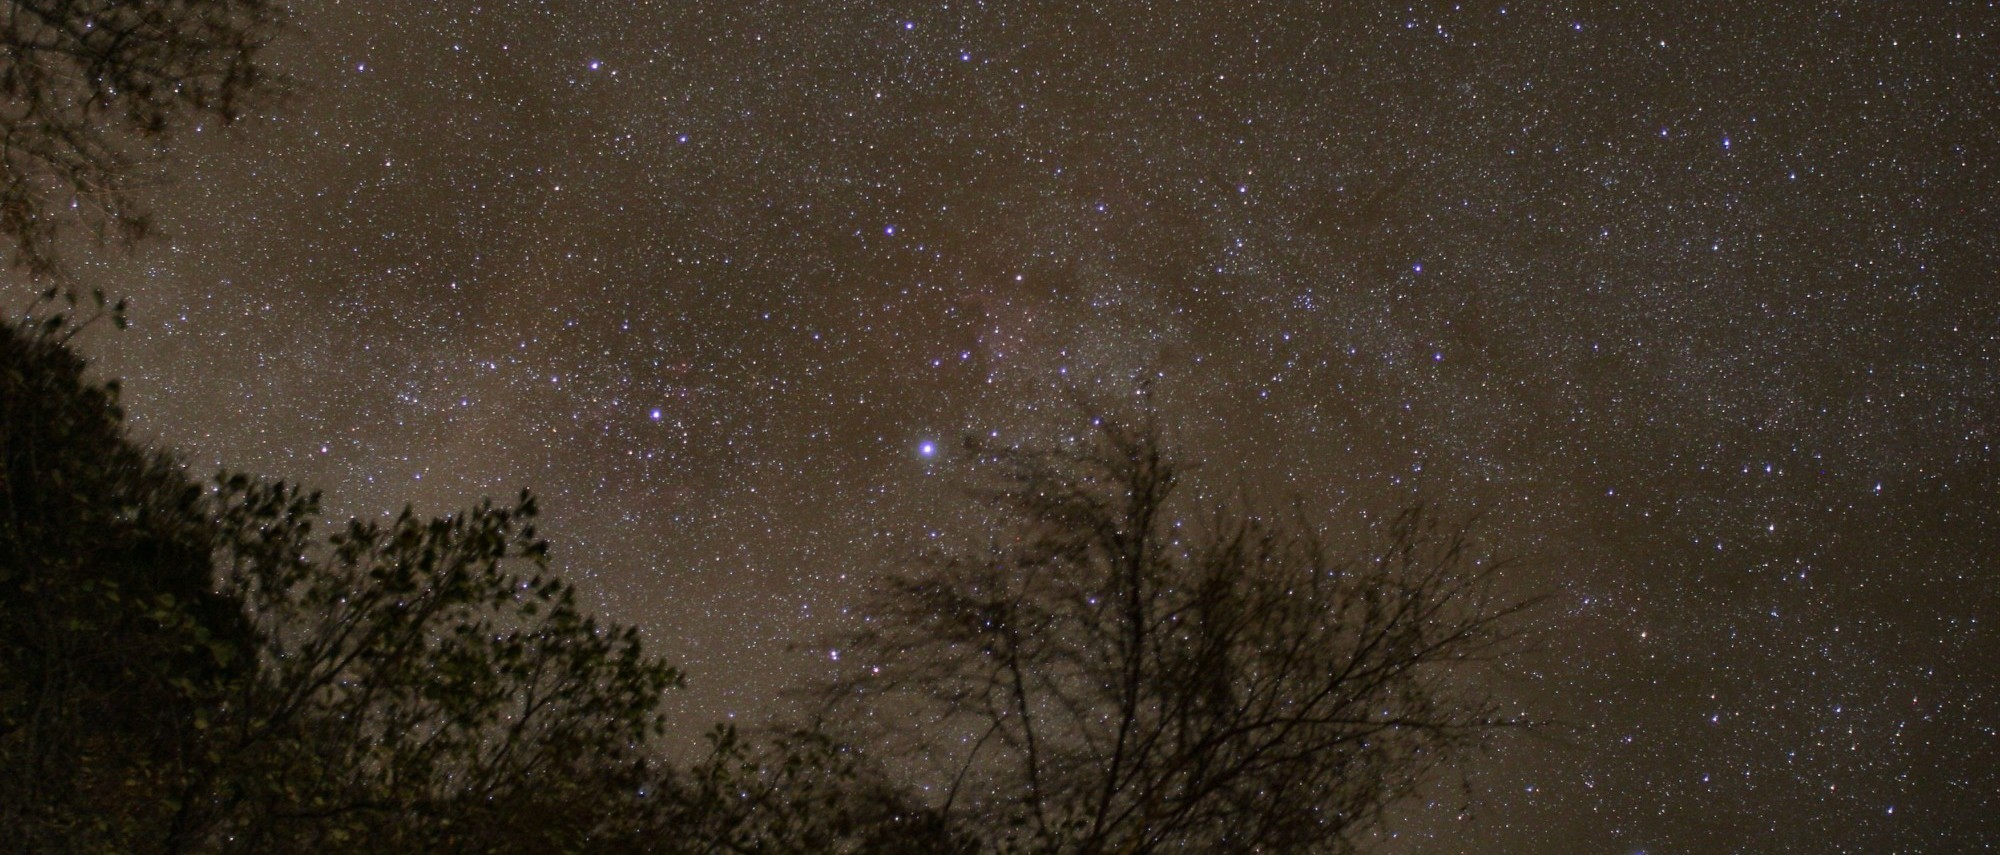 starry-night-above-the-trees-from-loch-venacher